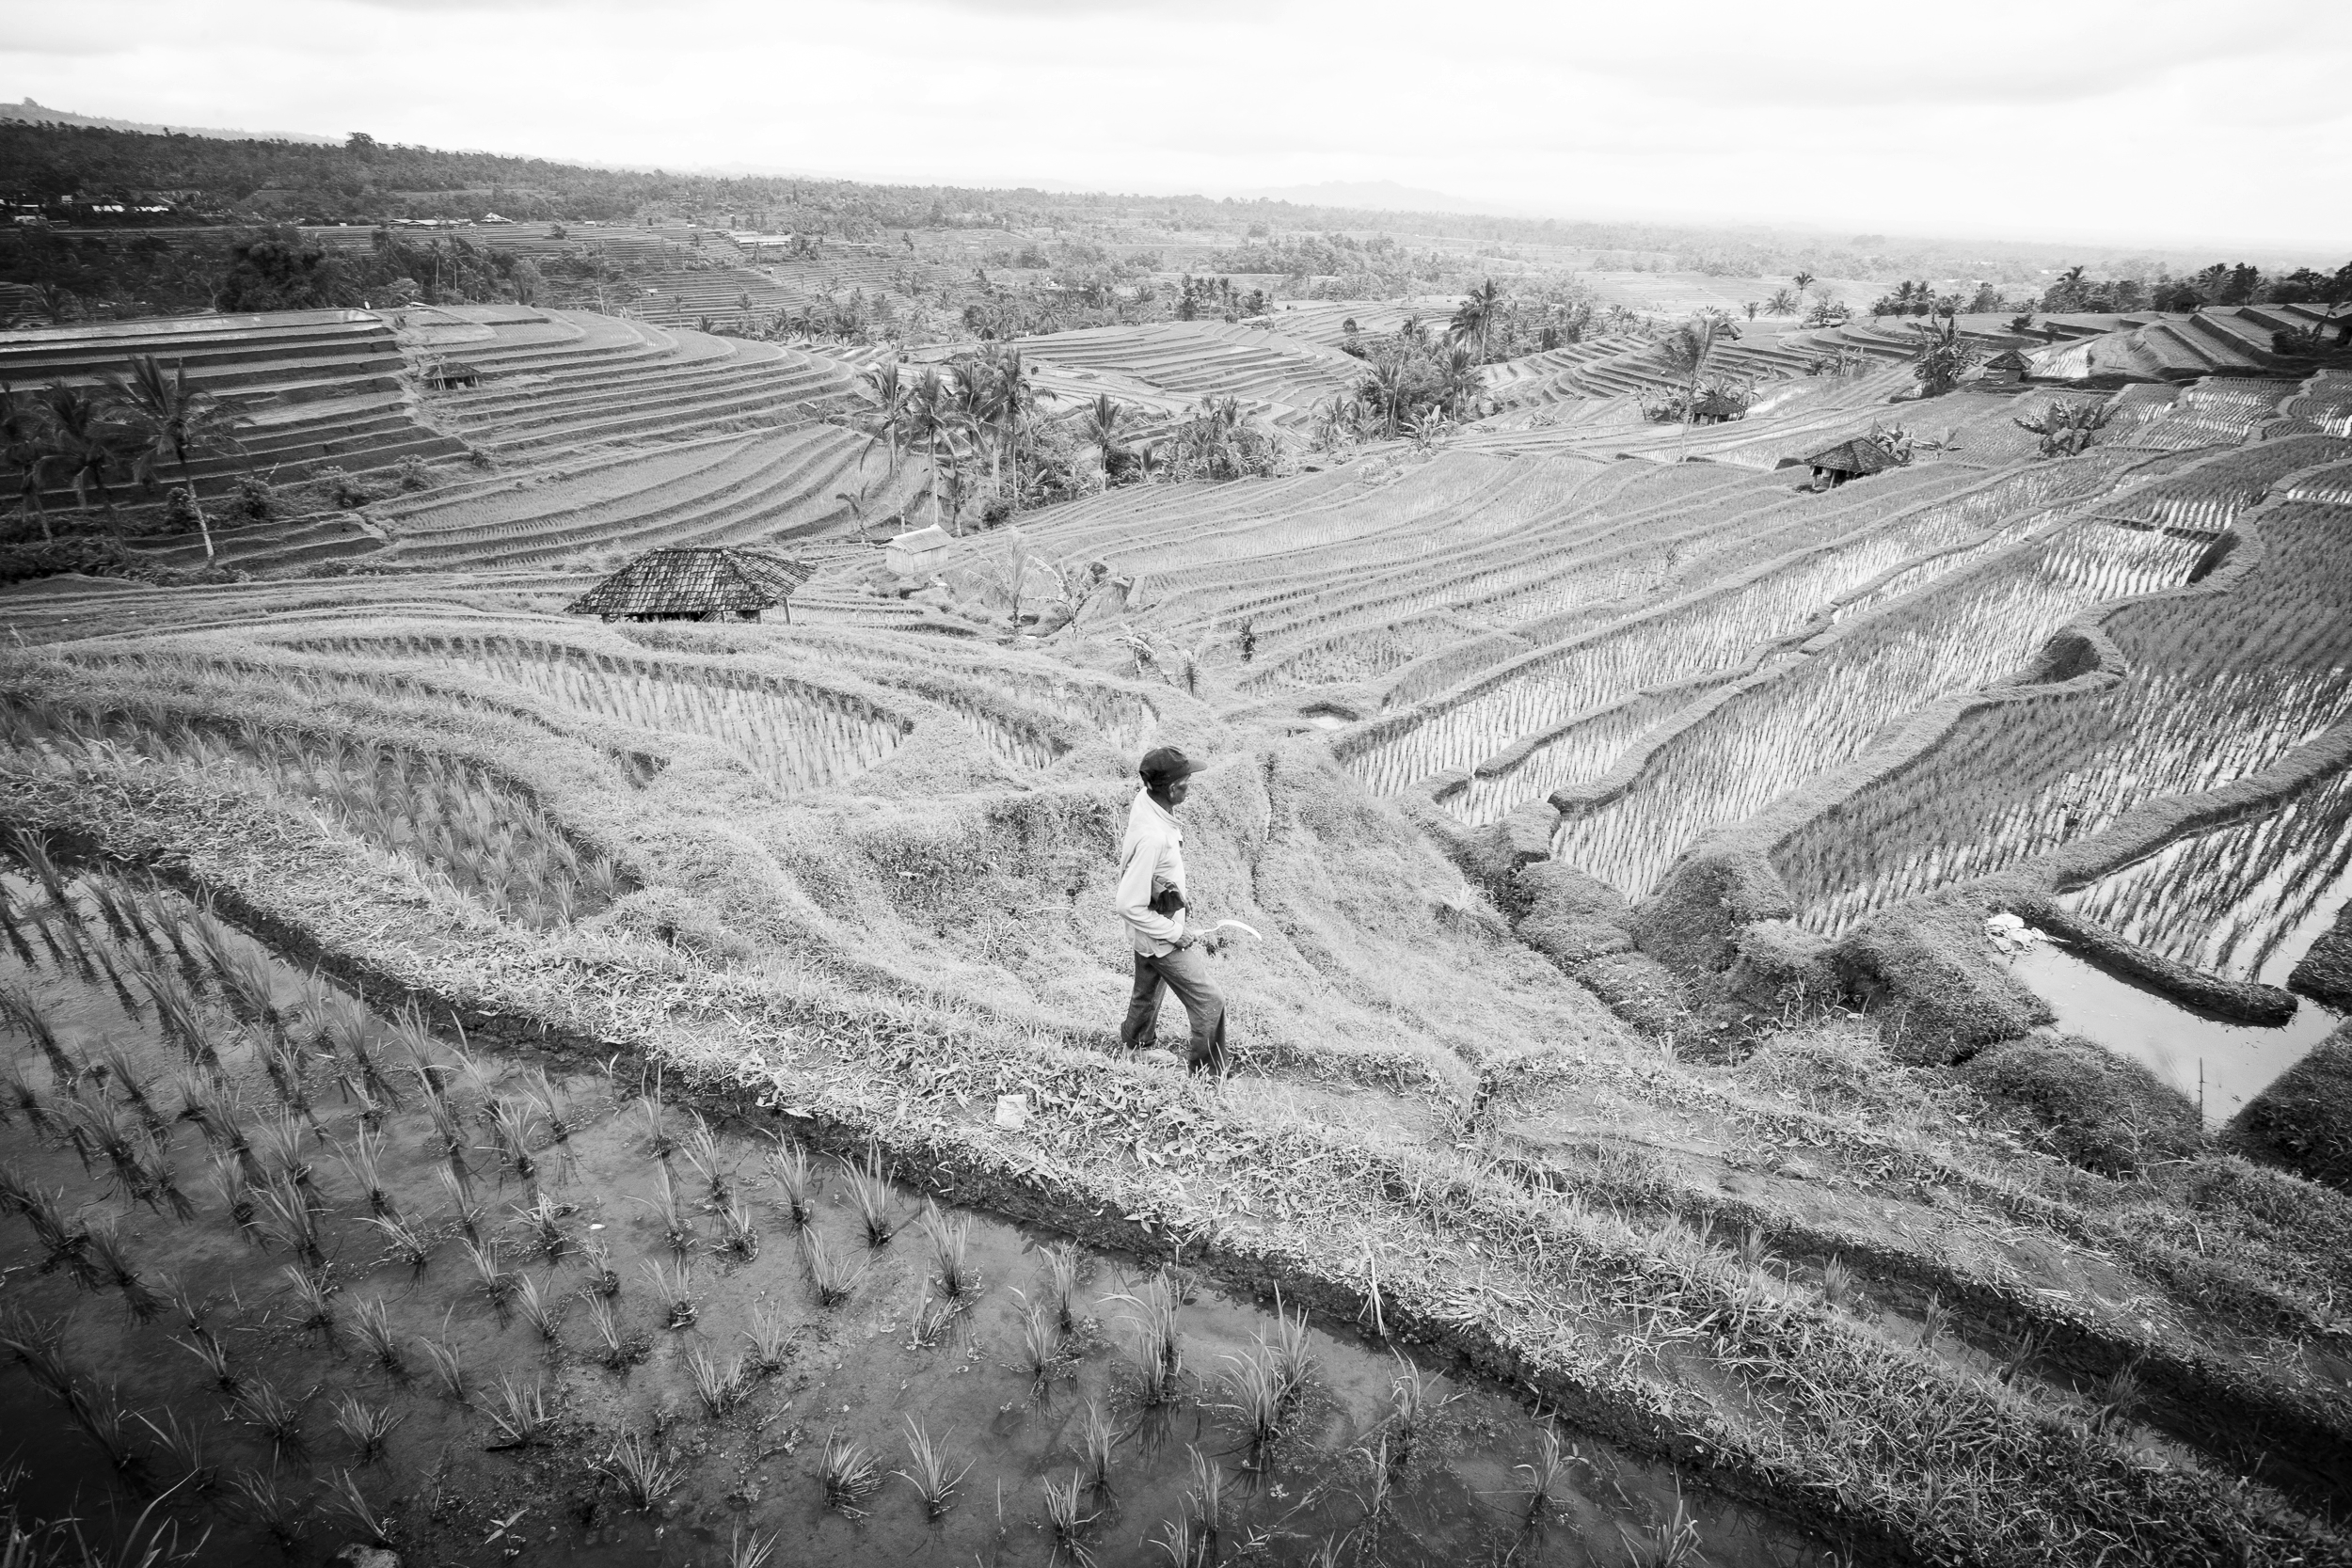 A man works in a rice paddy. Bali